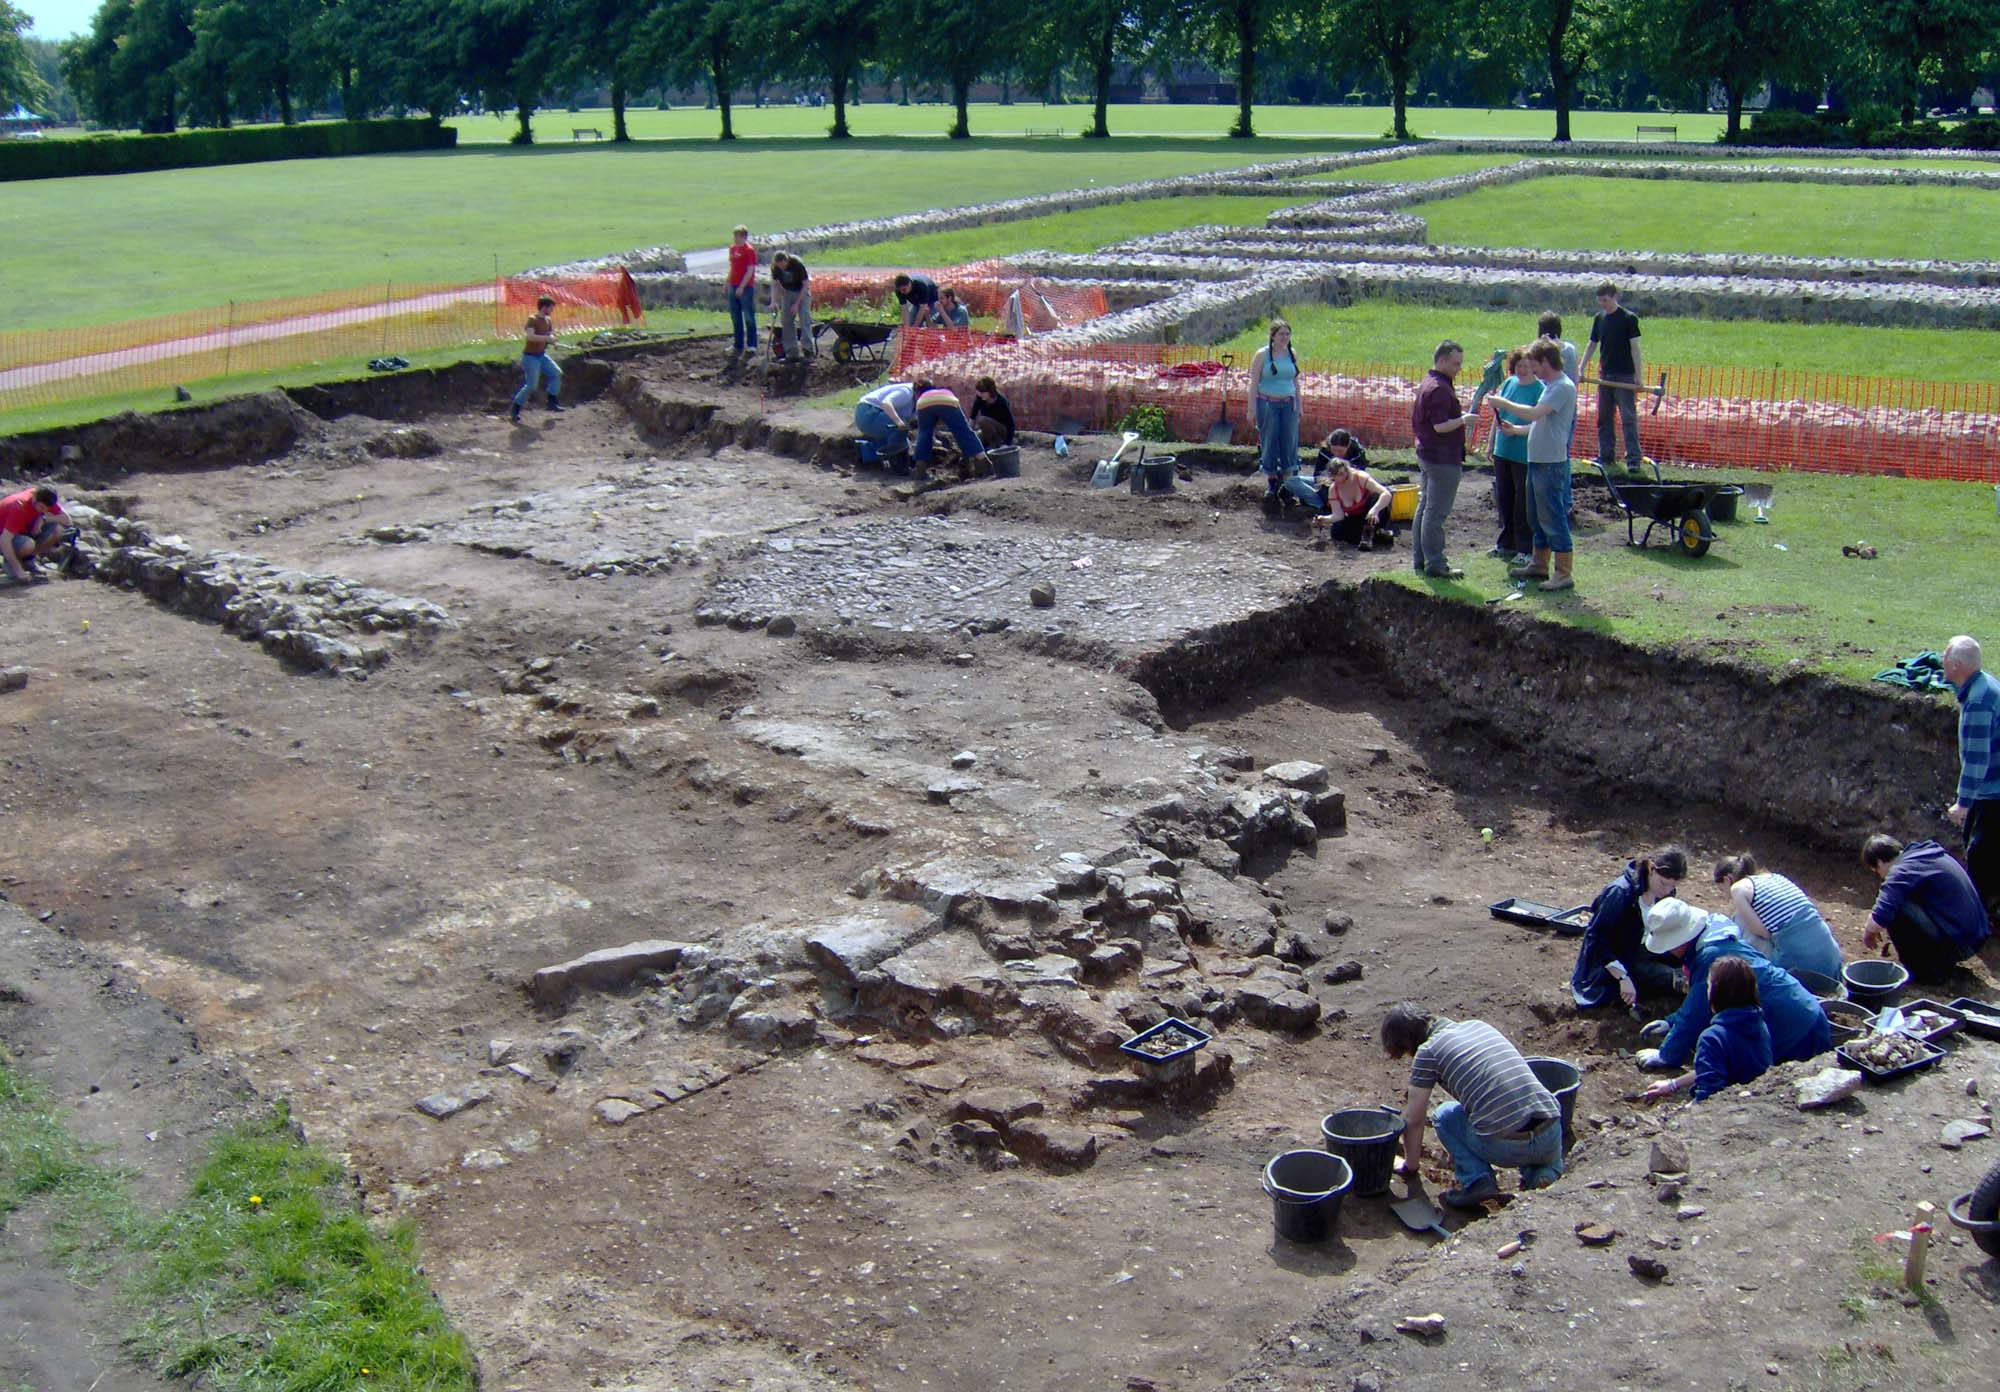 The University of Leicester carried out extensive archaeological excavations at the site of Leicester Abbey between 2000 and 2009 - University of Leicester Archaeological Services